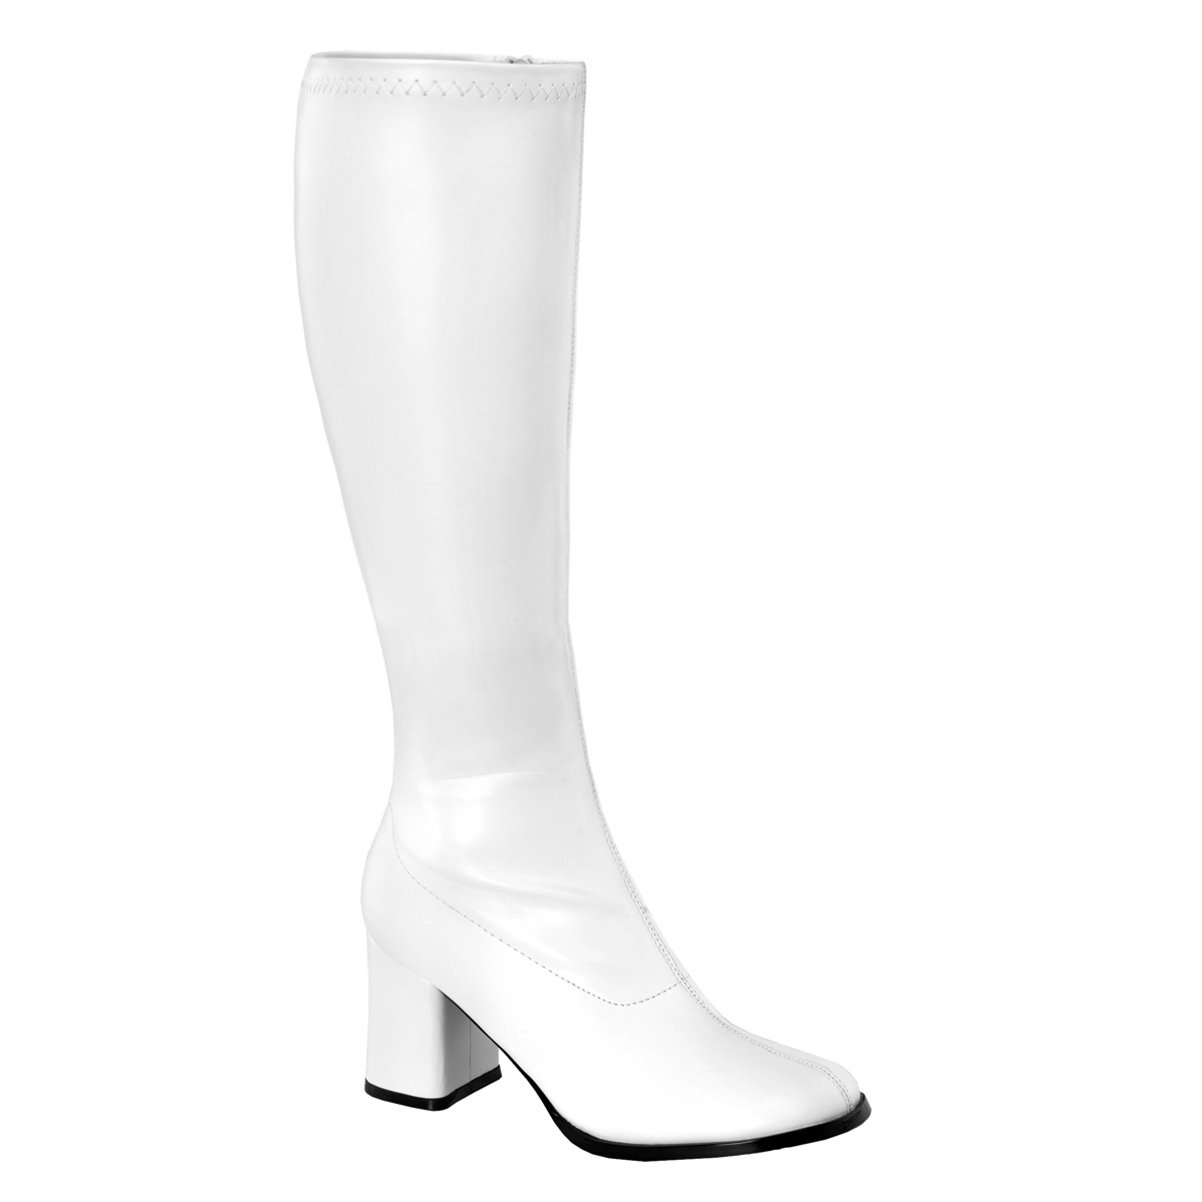 432d507e5f2 Womens White Go Go Boots 3 Inch Chunky Heel Stretch Knee Highs Boots Matte  Zip